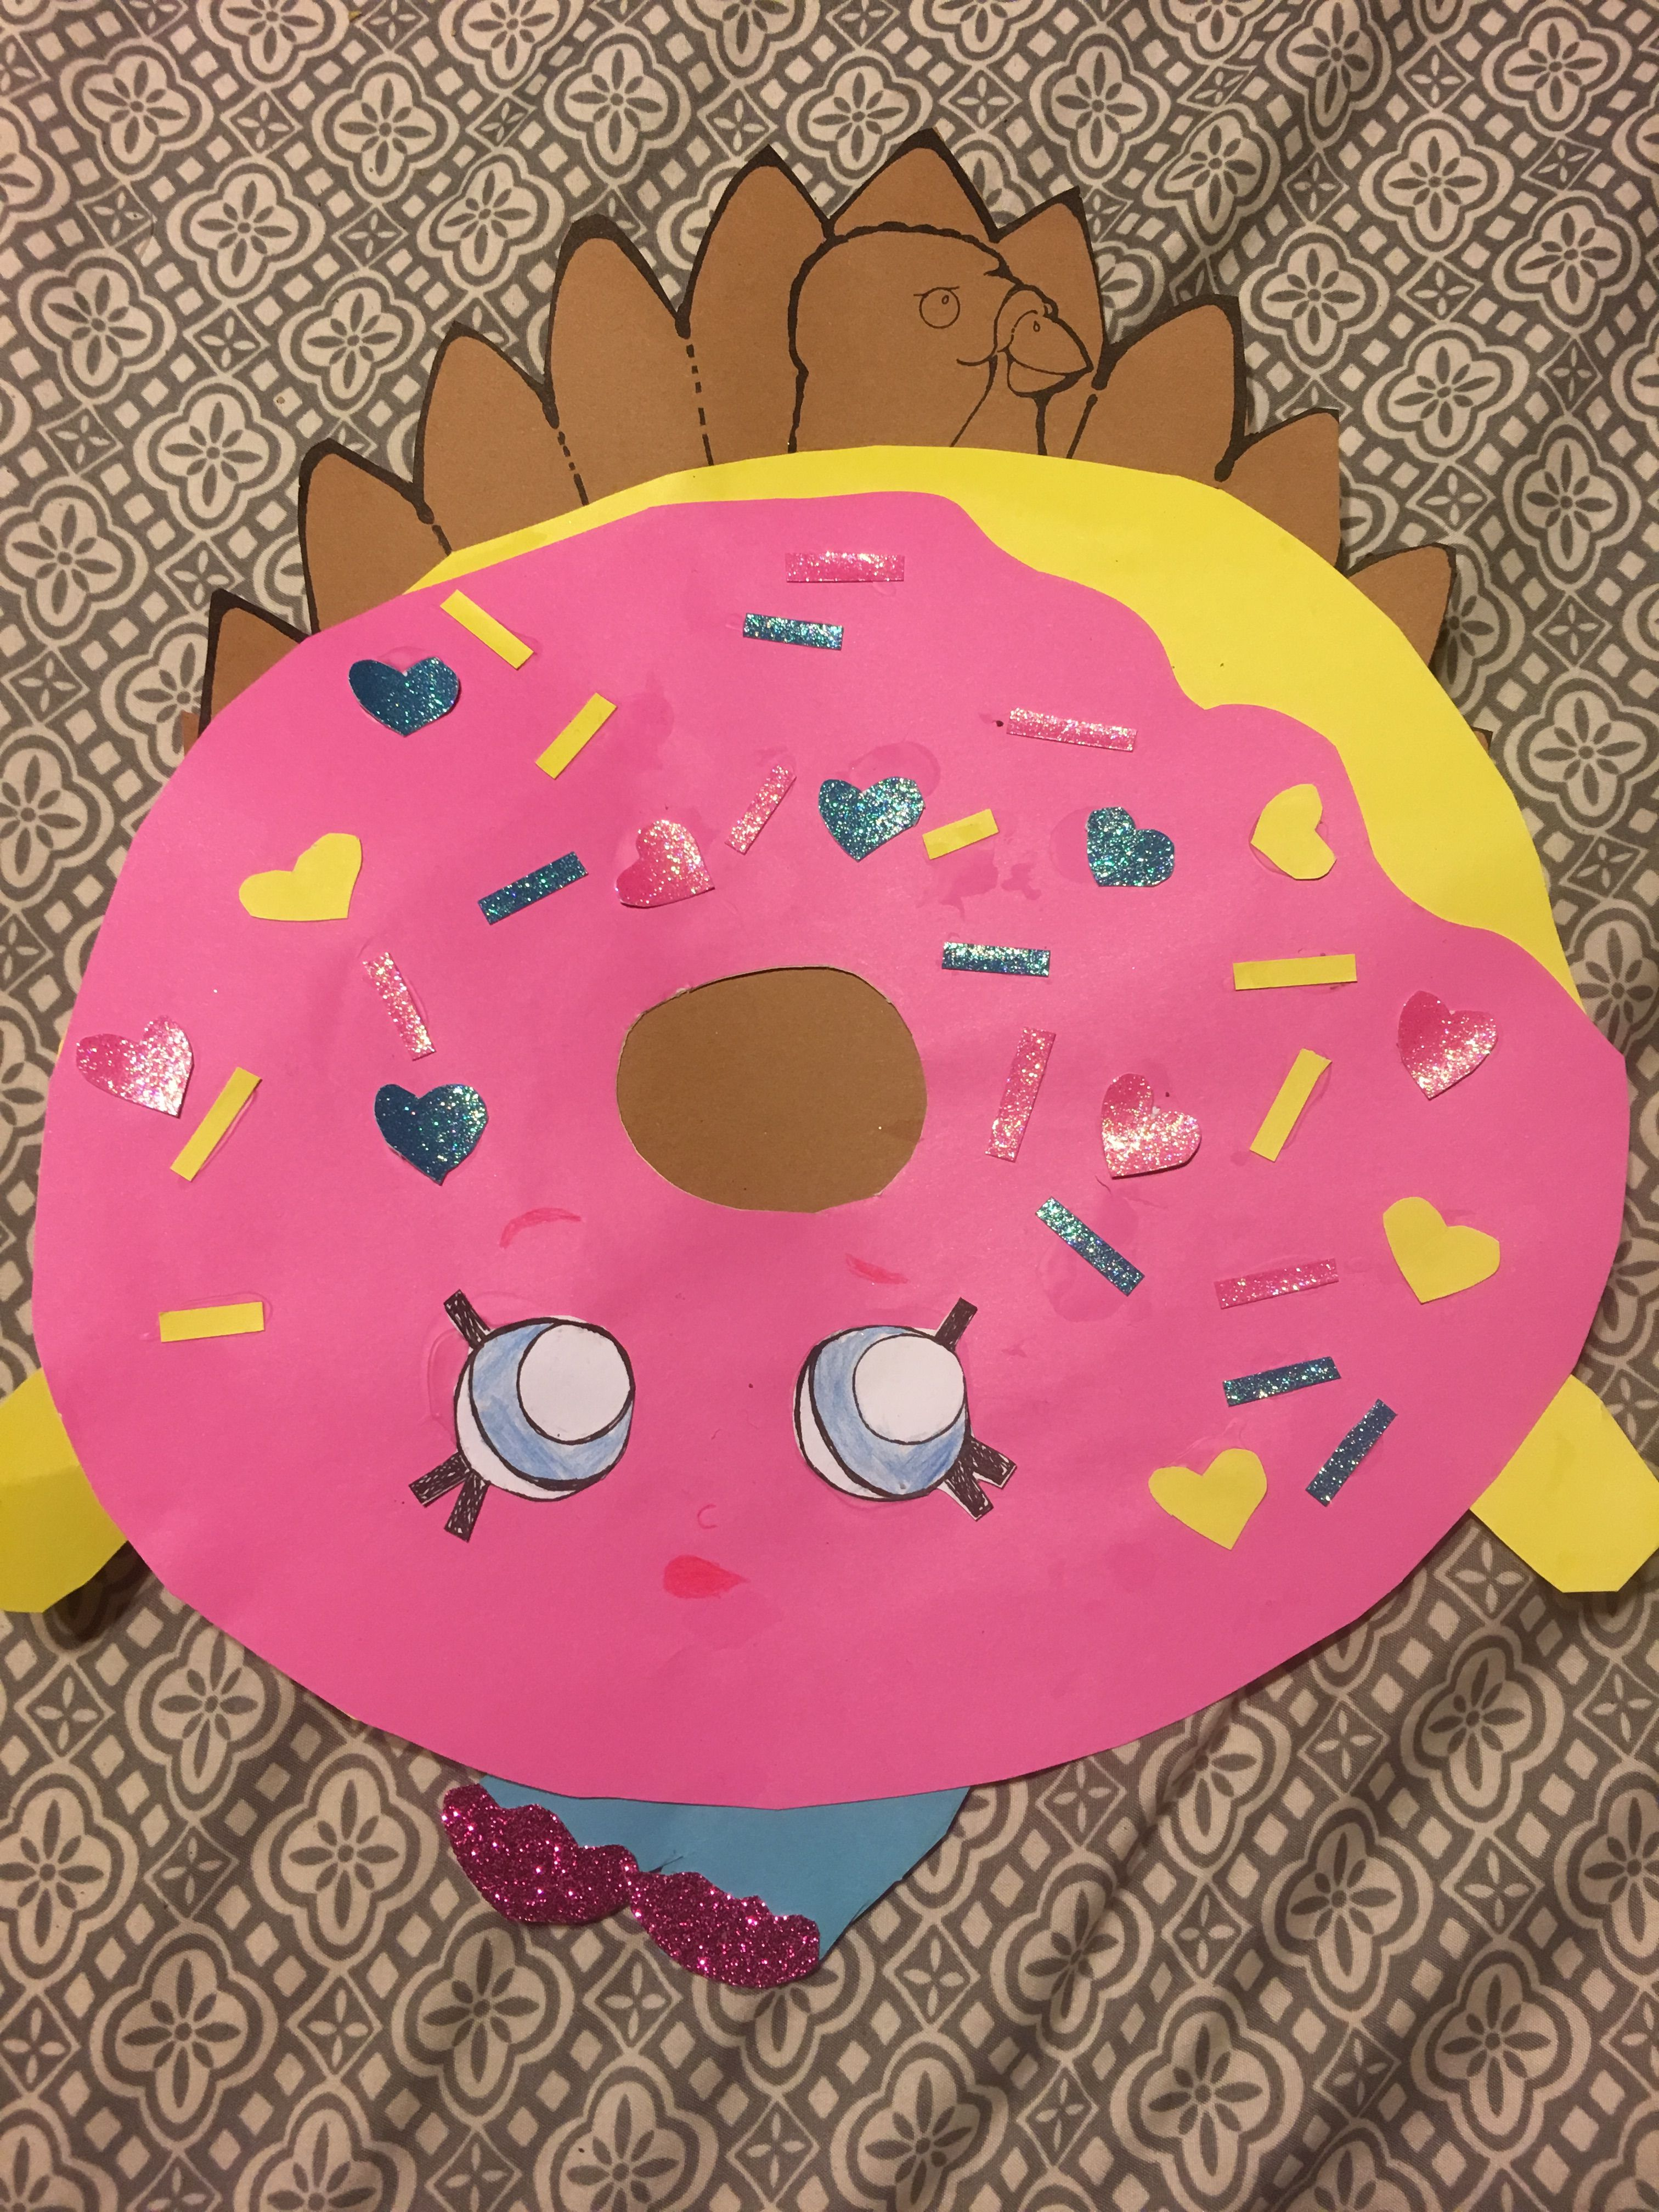 Thanksgiving Project Turkey Disguise As D Lish Donut Shopkins Turkey Project Turkey Disguise Project Thanksgiving Projects